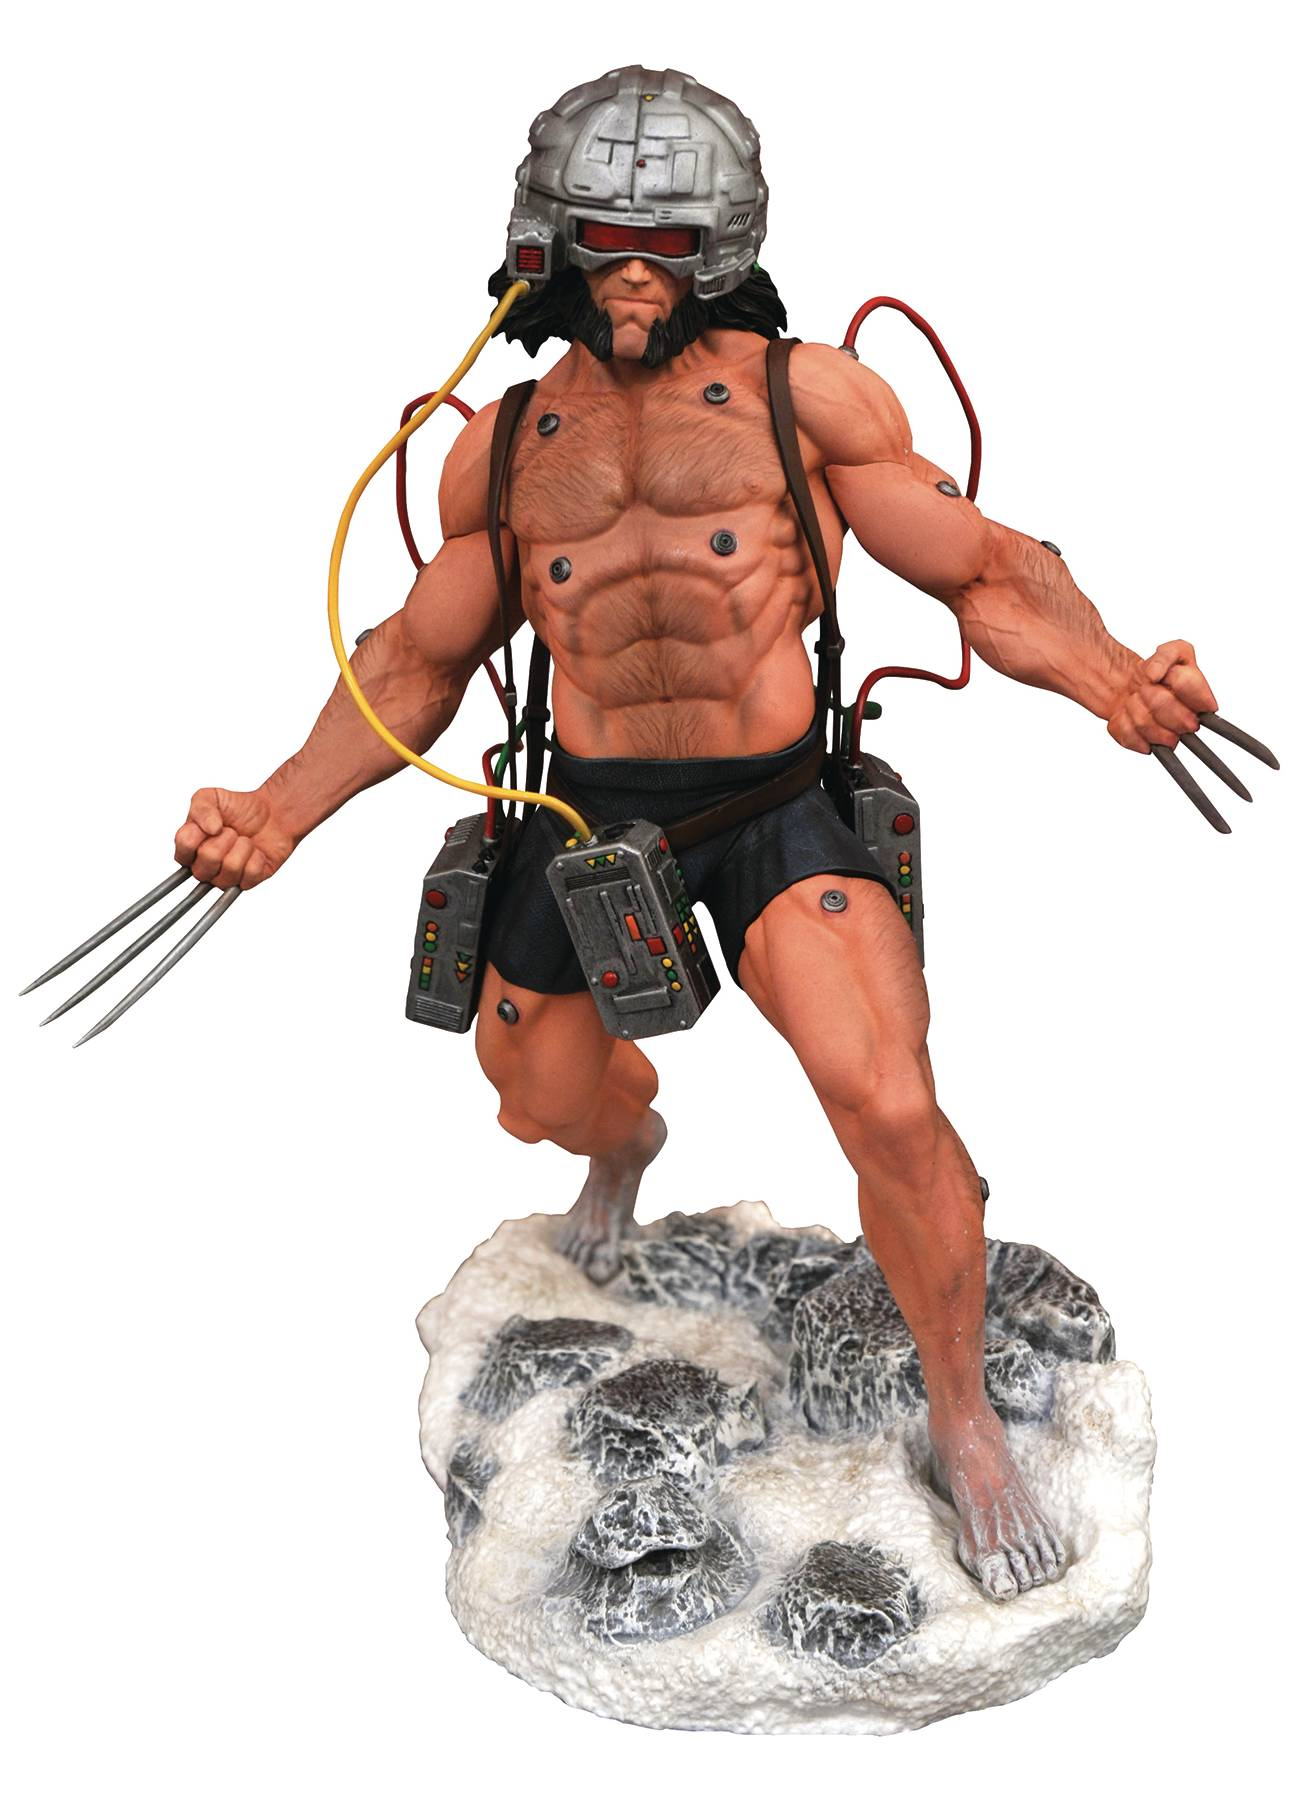 Pre-Order Diamond Marvel Gallery Weapon X Statue